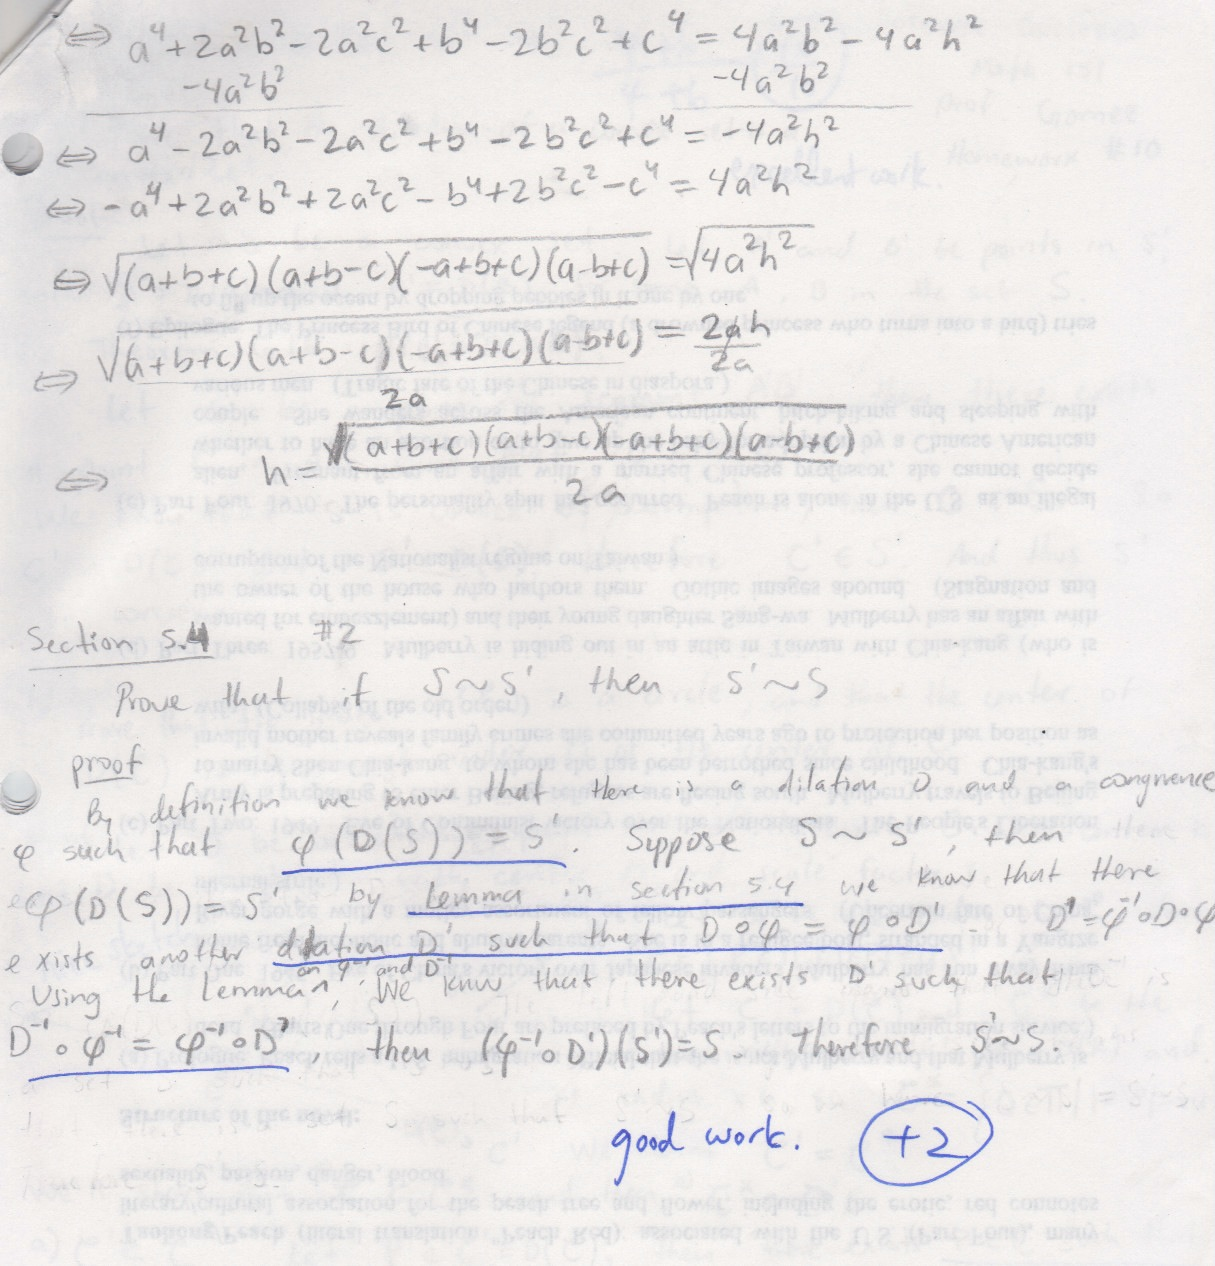 My old math homework from UC Berkeley : Math 151 hw10